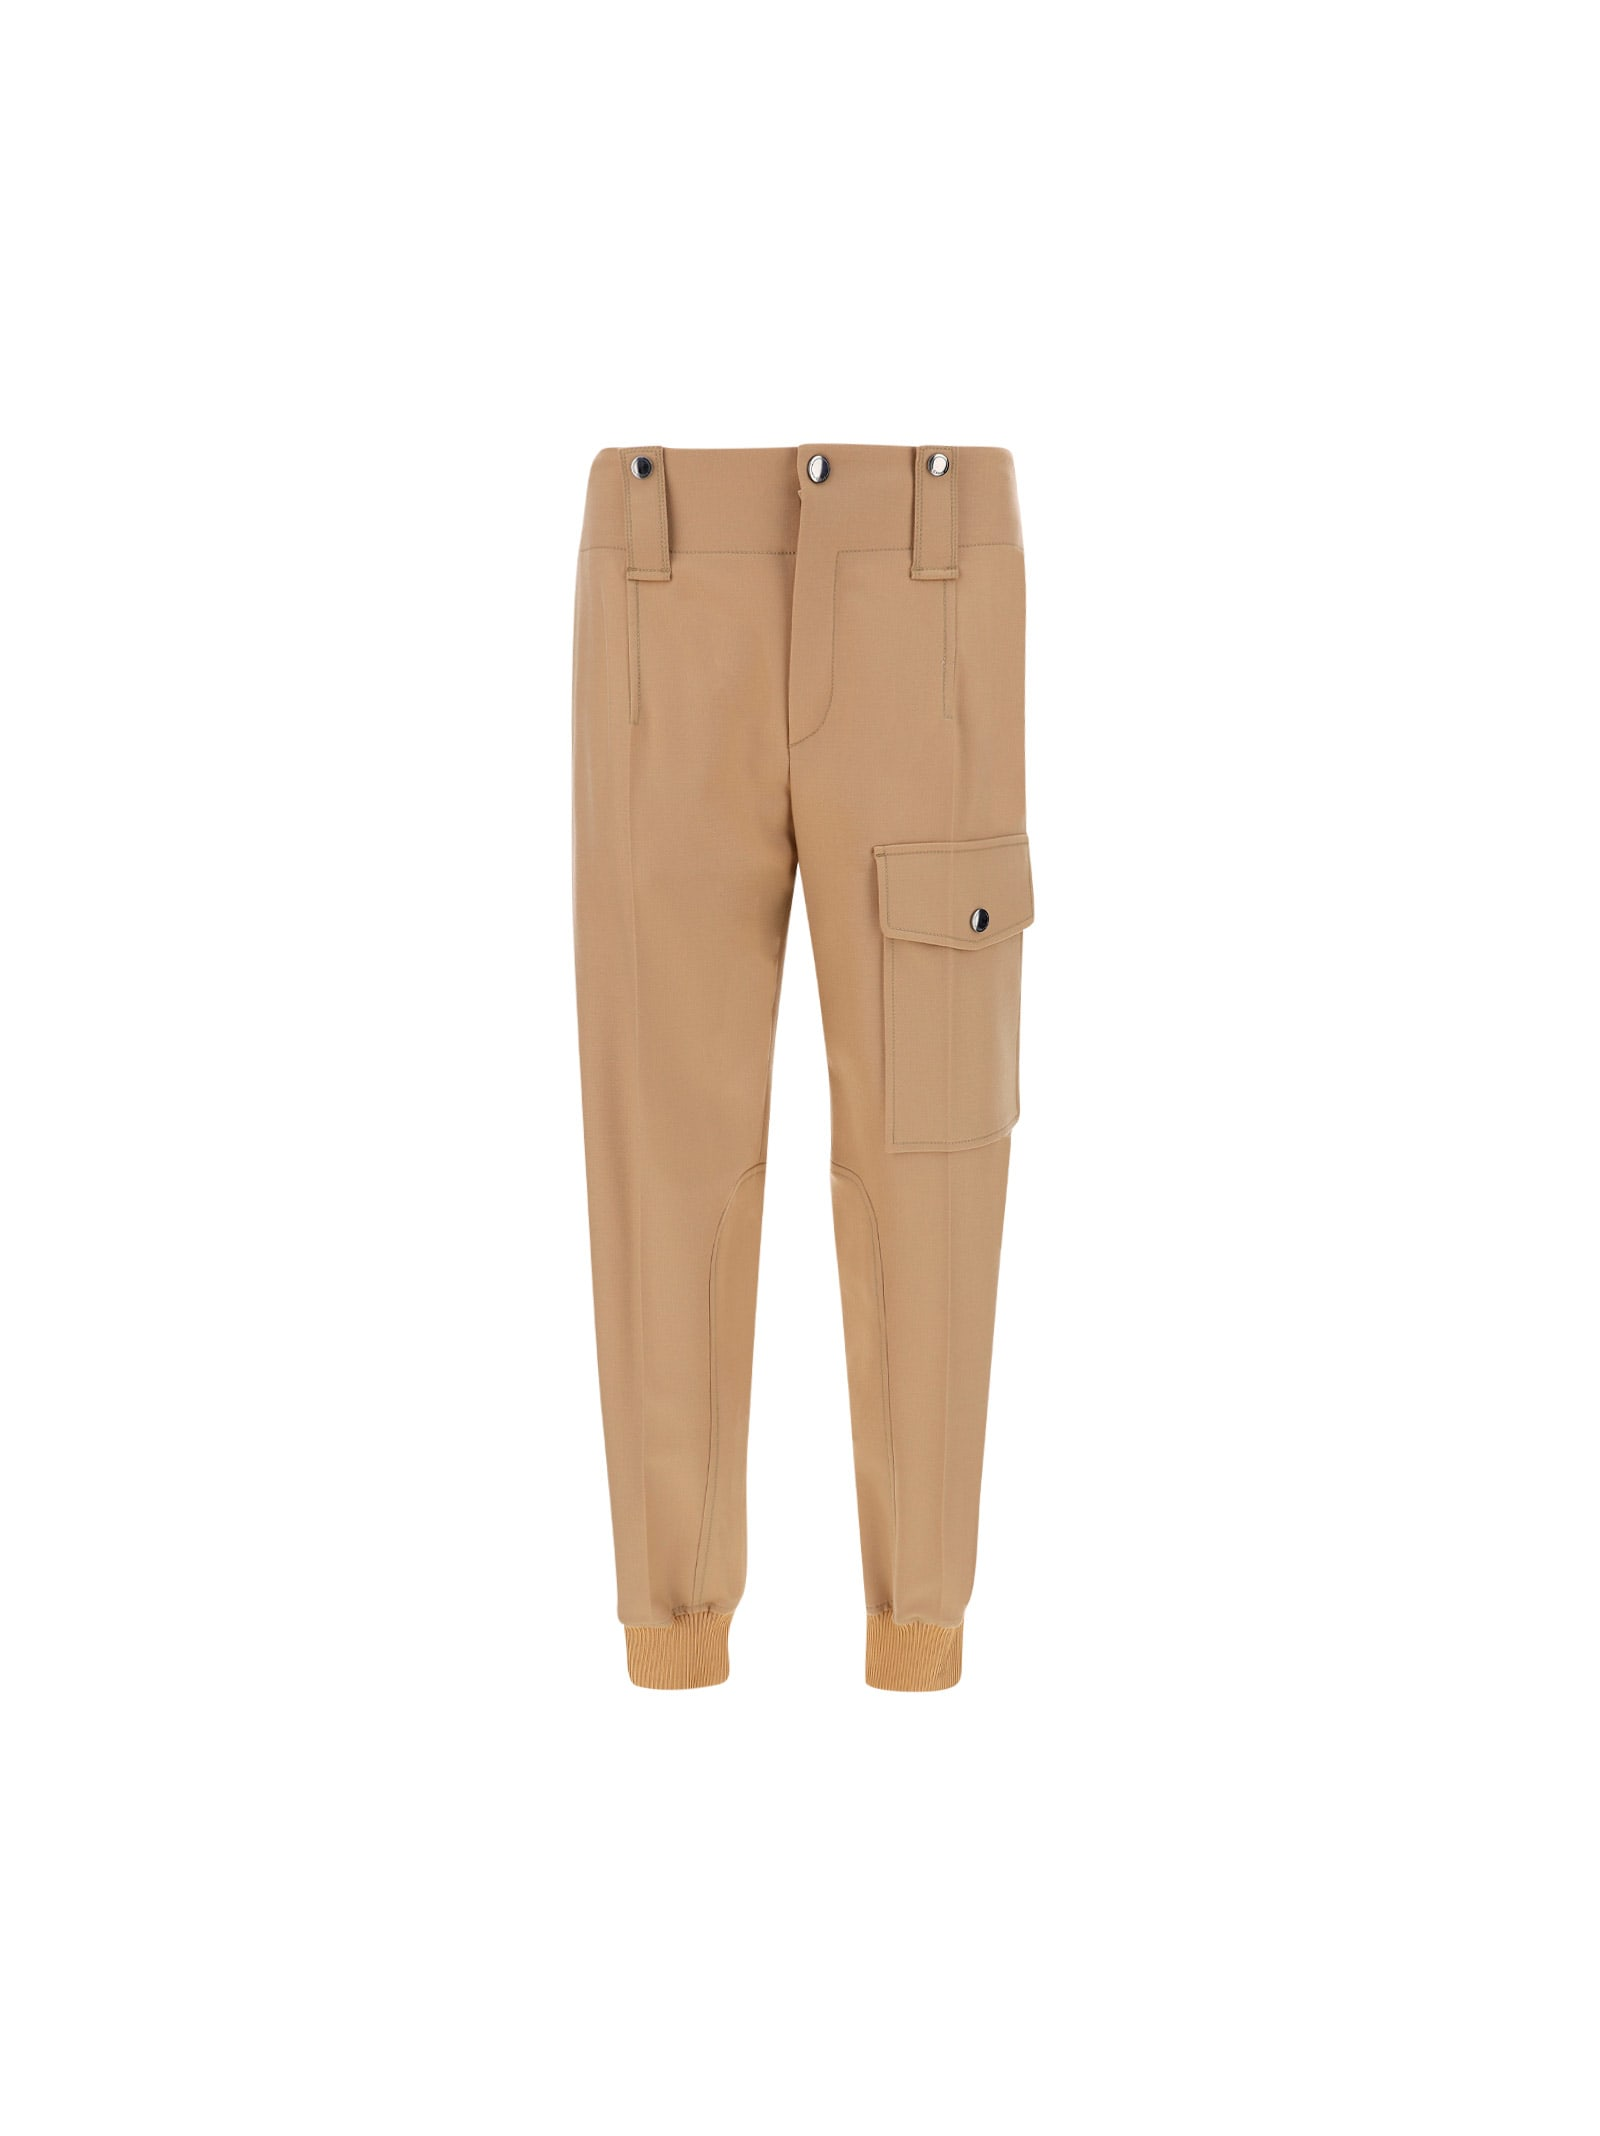 Beige Wool Pants by Chloé, button and zip closure on front, pinces on front, button pockets on front, cargo fit, cuffs on bottom, brand logo inside label. Composition: 100% Wool